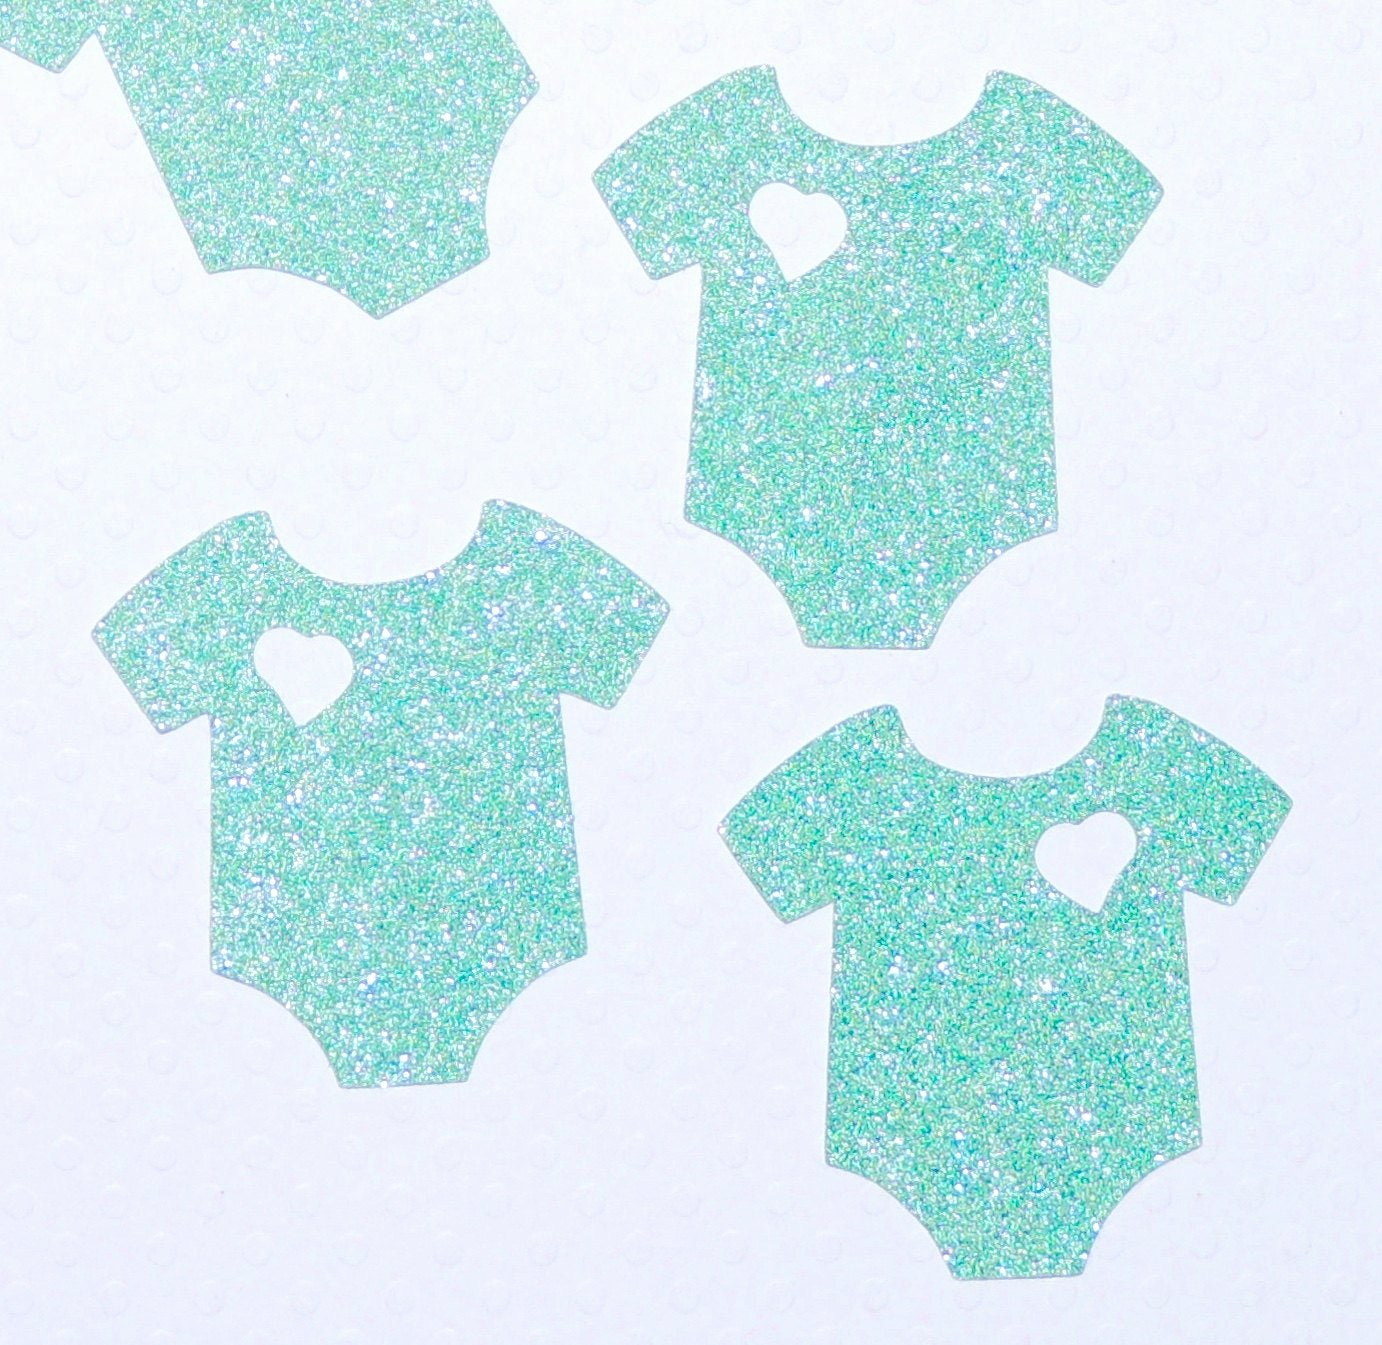 Onesie Paper Cut Out New Baby Esie Lite Green Glitter Die Cut Out Handmade Scrapbook